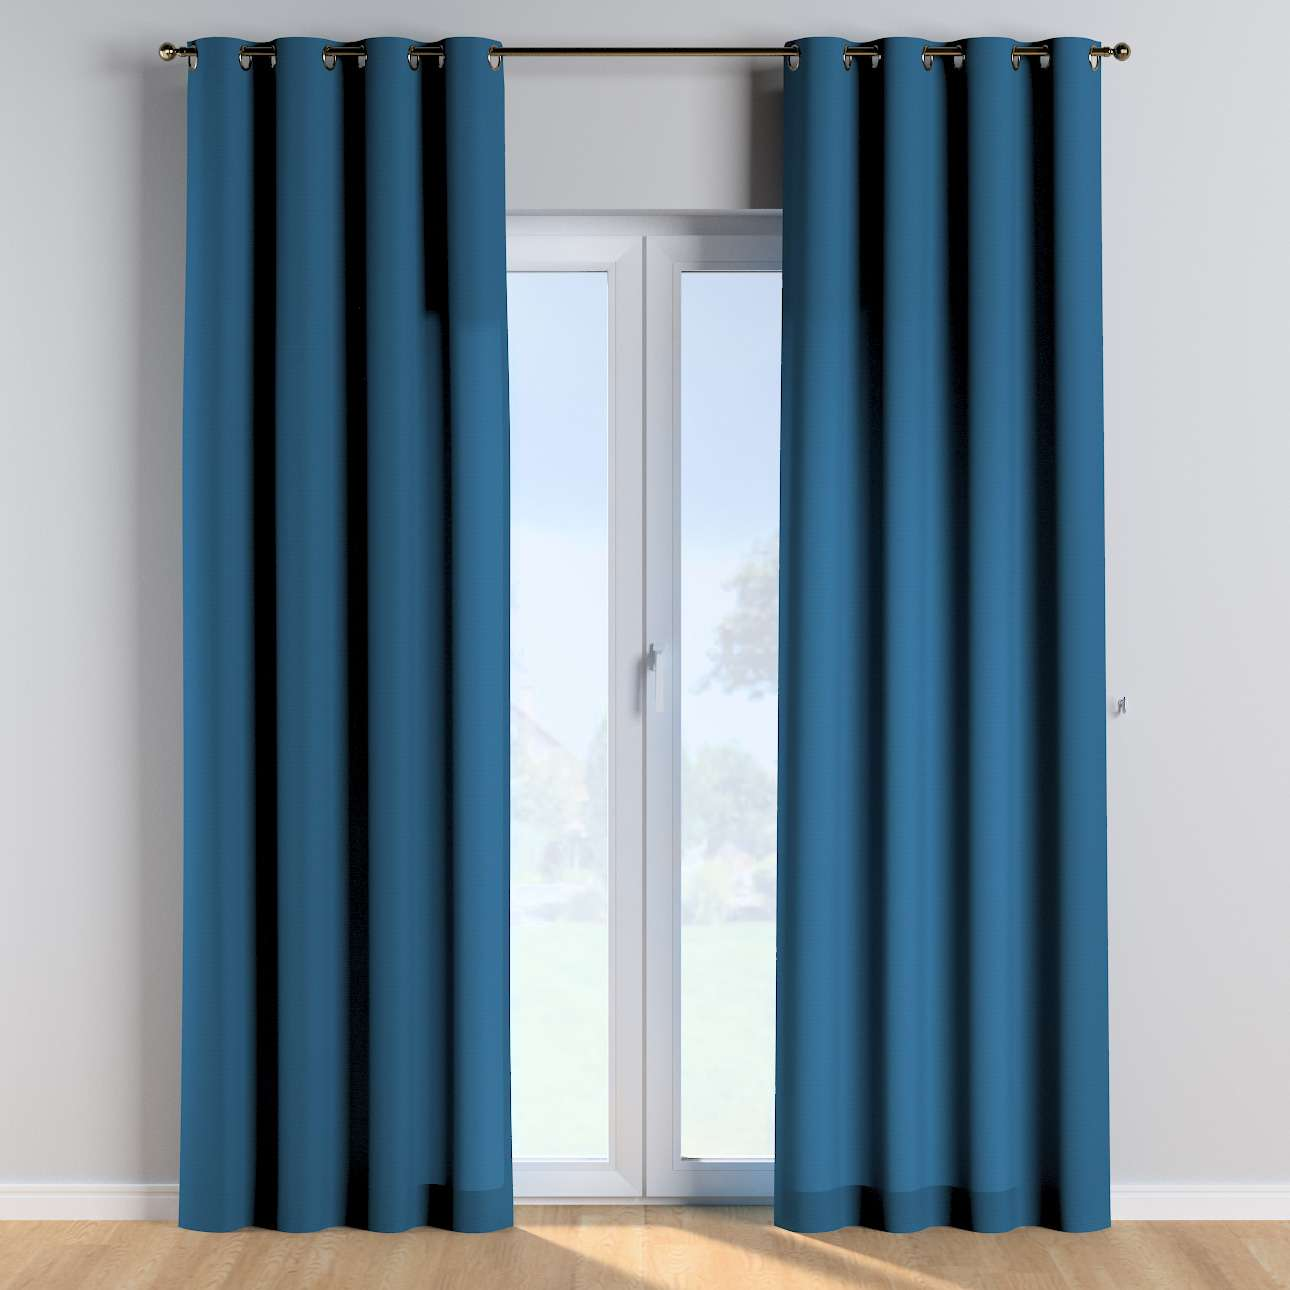 Eyelet curtains in collection Cotton Story, fabric: 702-30